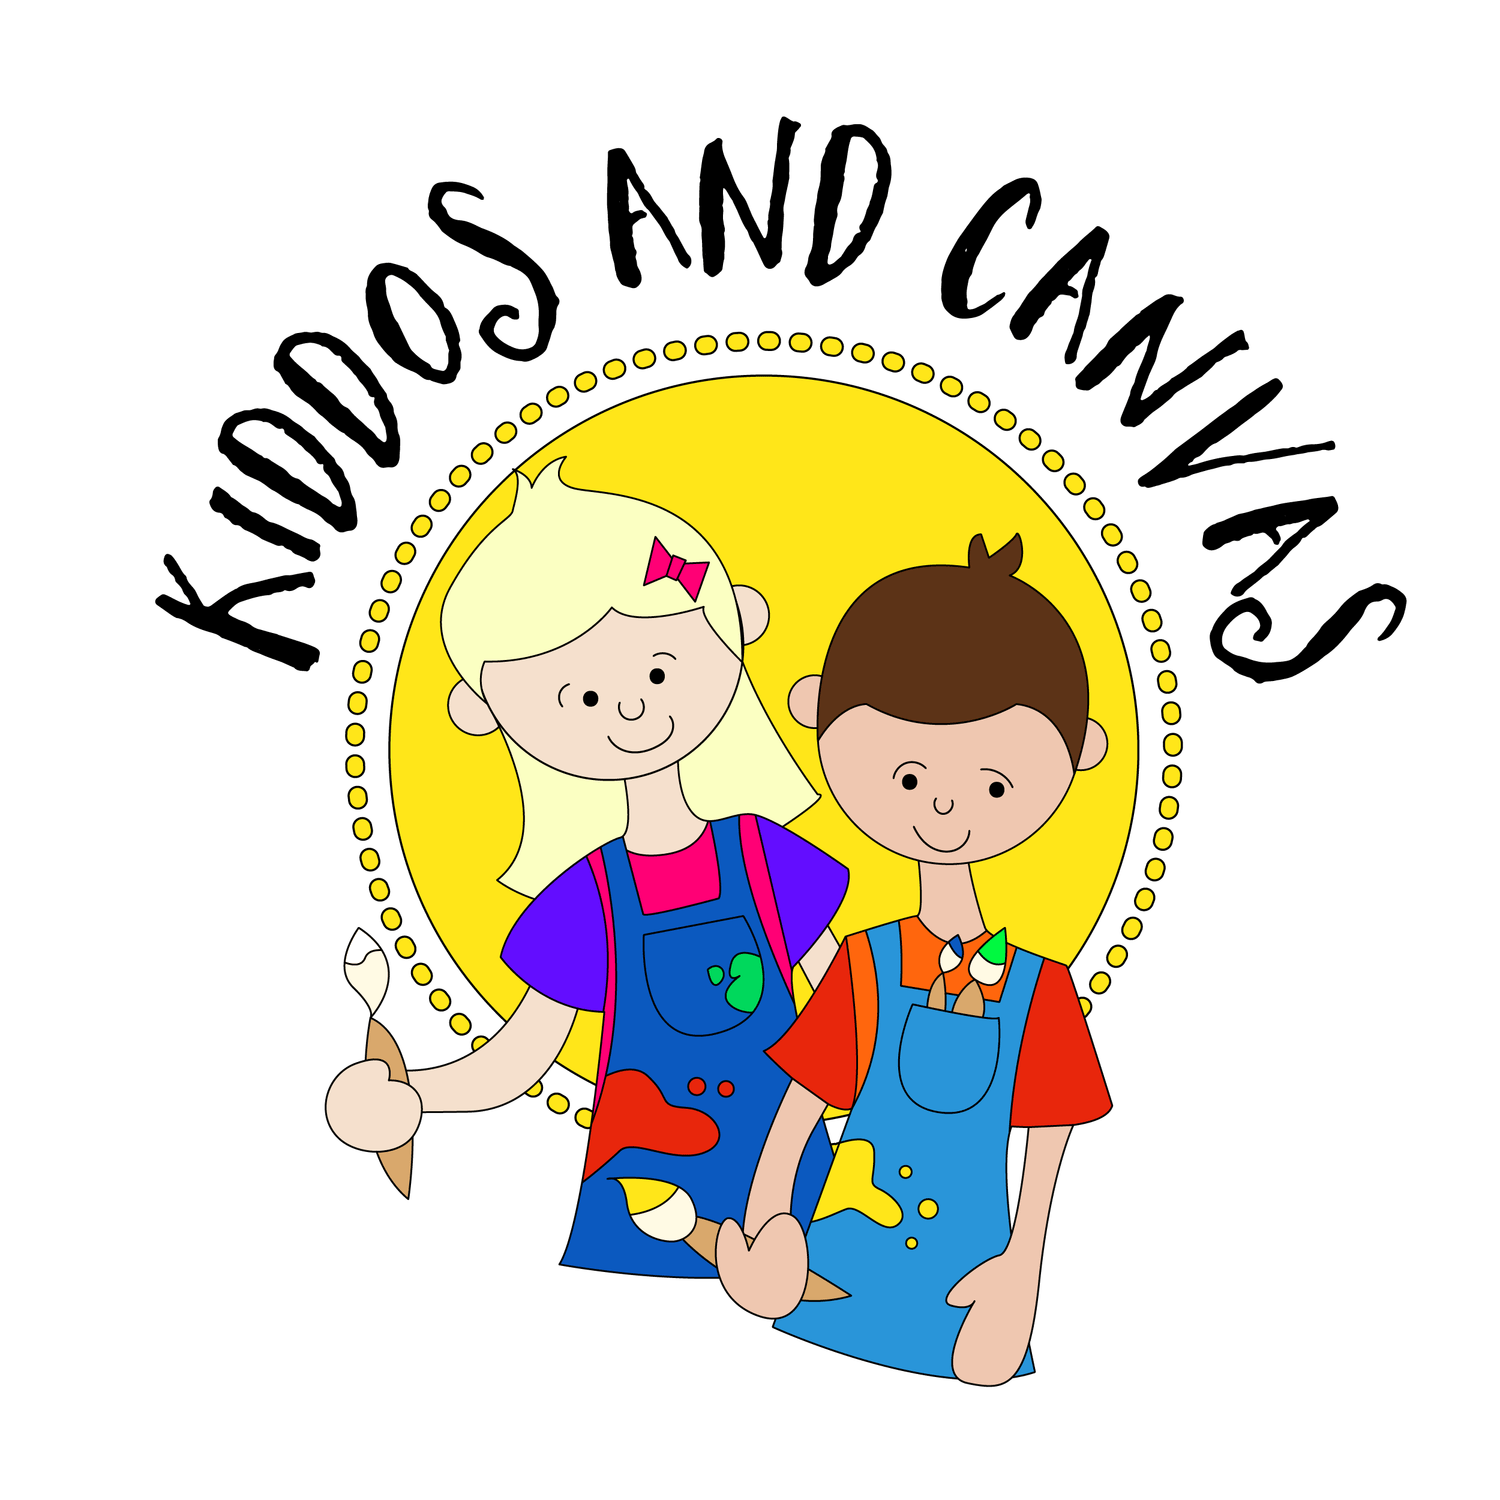 Proud clipart successful child. Kiddos and canvas choose